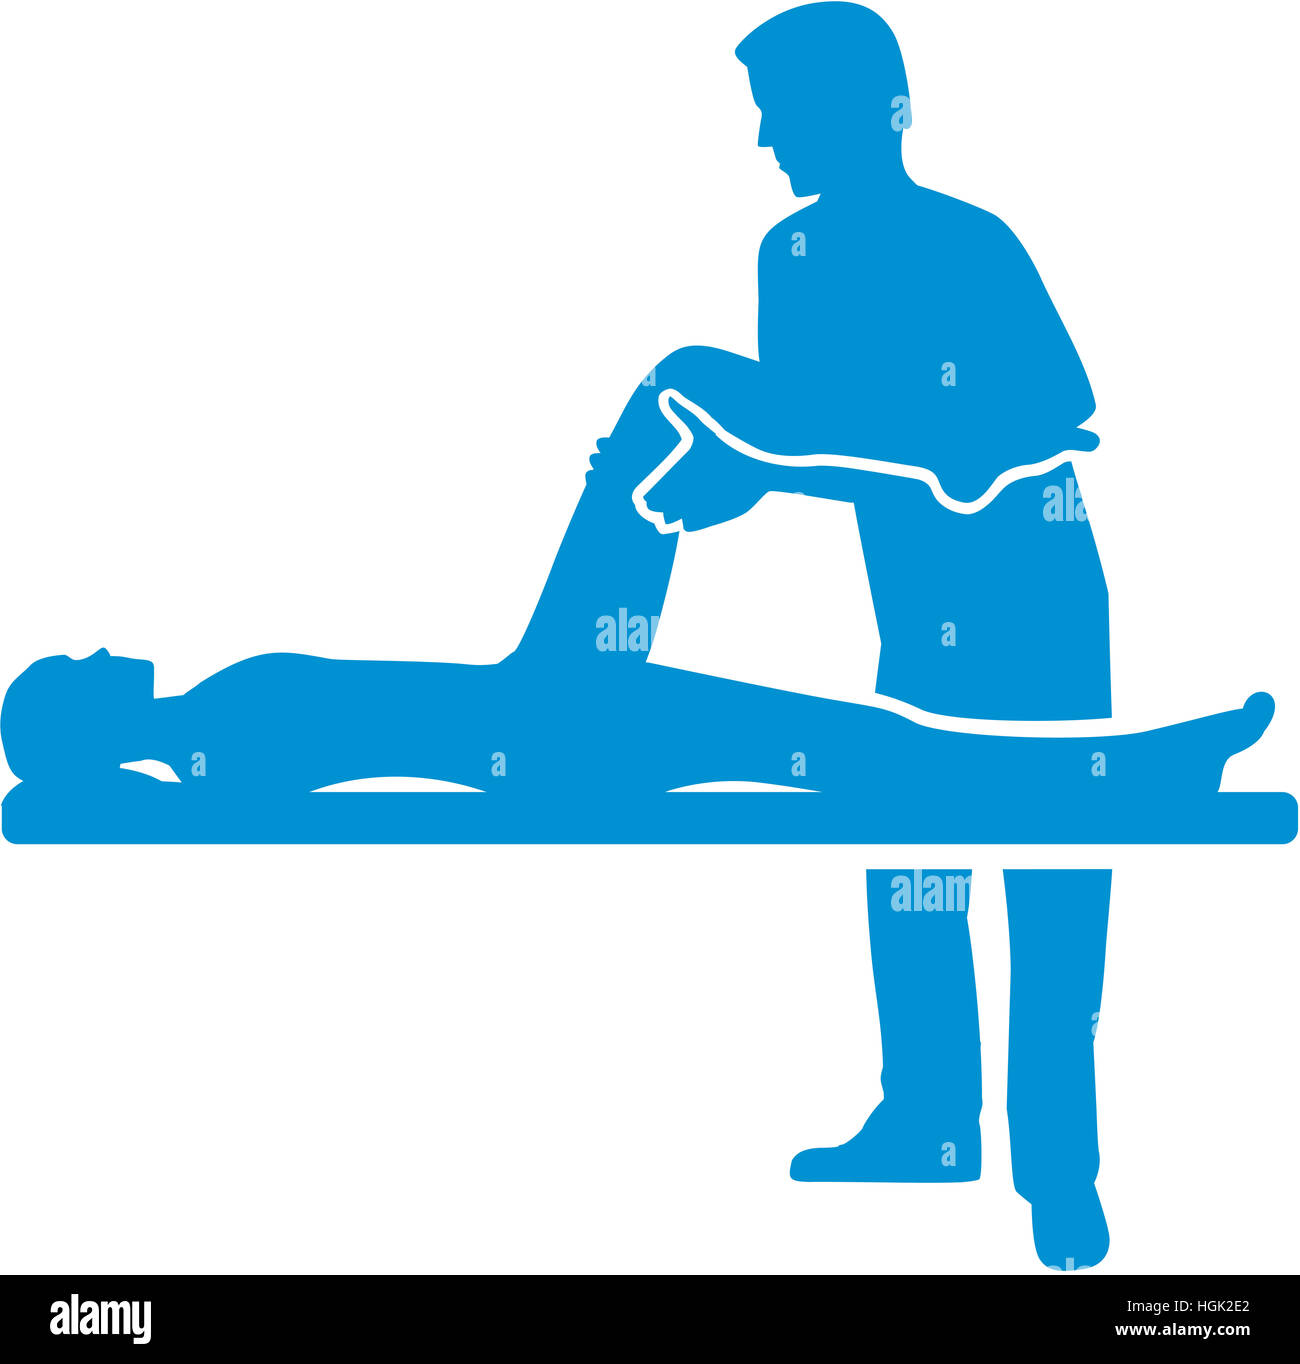 Physical therapy silhouette - Stock Image